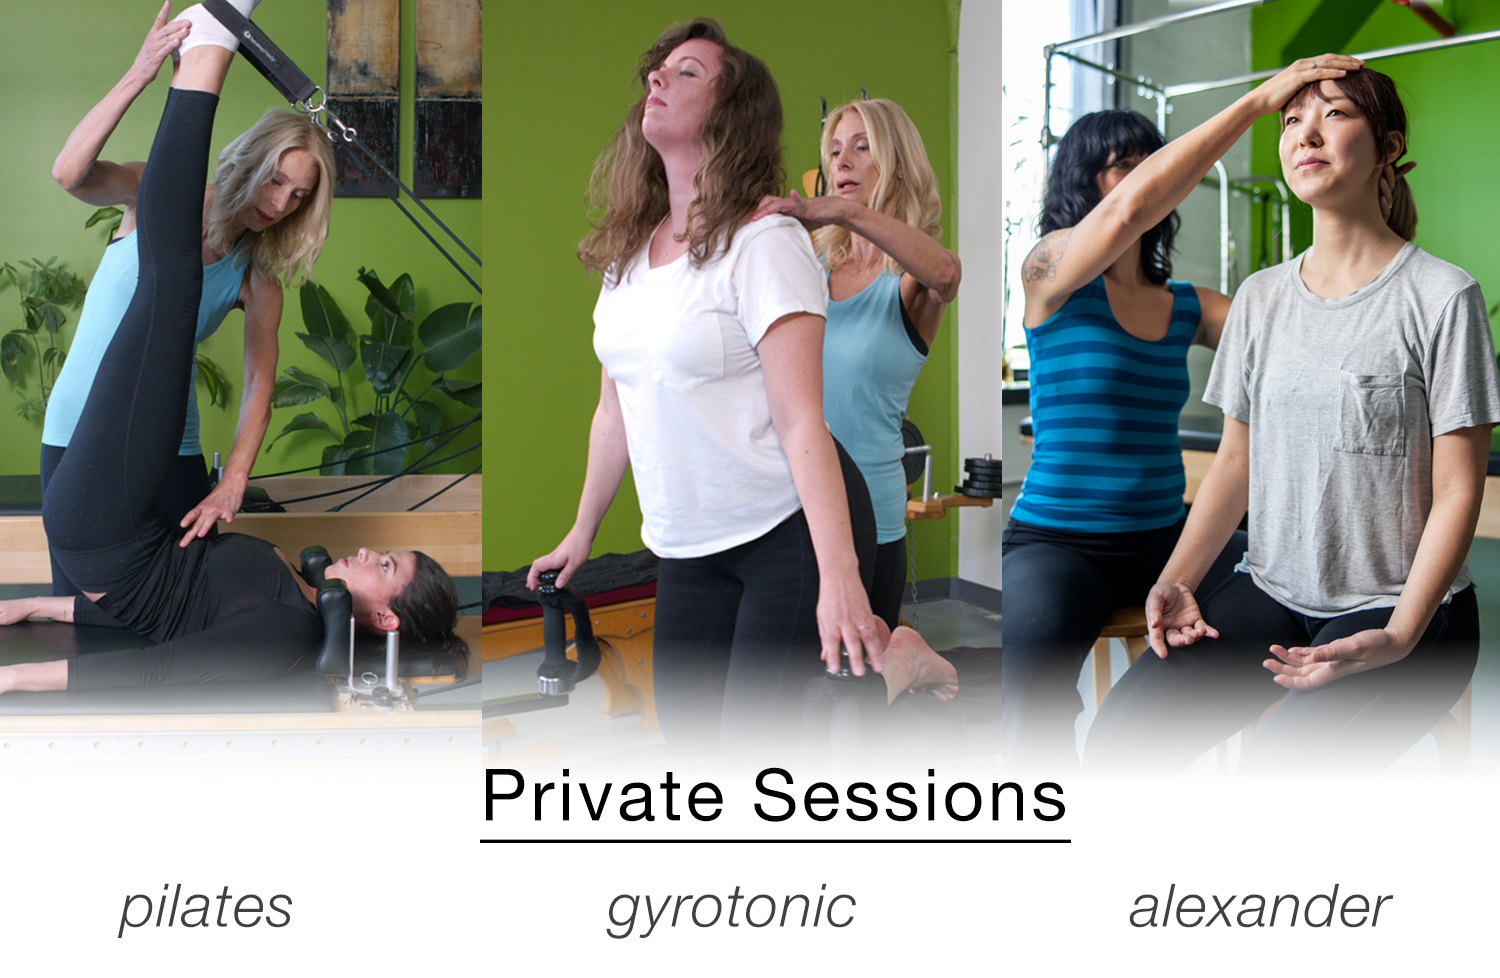 Under the guidance of founder Janine Flasschoen, private sessions are customized and tailored to your individual needs. Janine is meticulous in her attention to detail, form, and alignment that will help unlock the power, balance, and energy you already have. Check out our  schedule page  to sign up for a session!